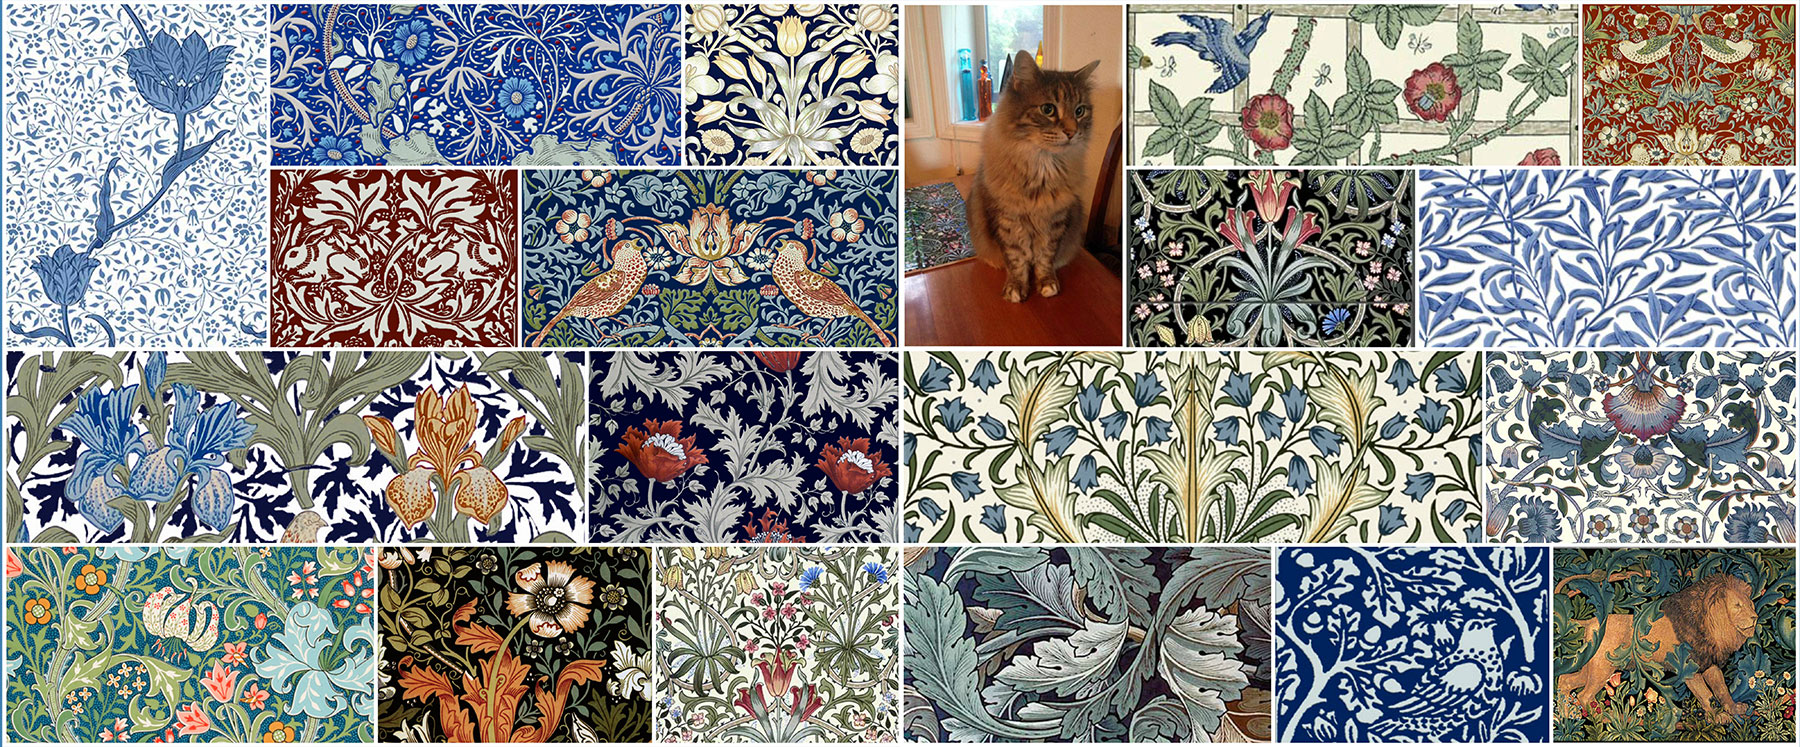 William Morris, William De Morgan, Arts and Crafts Tiles